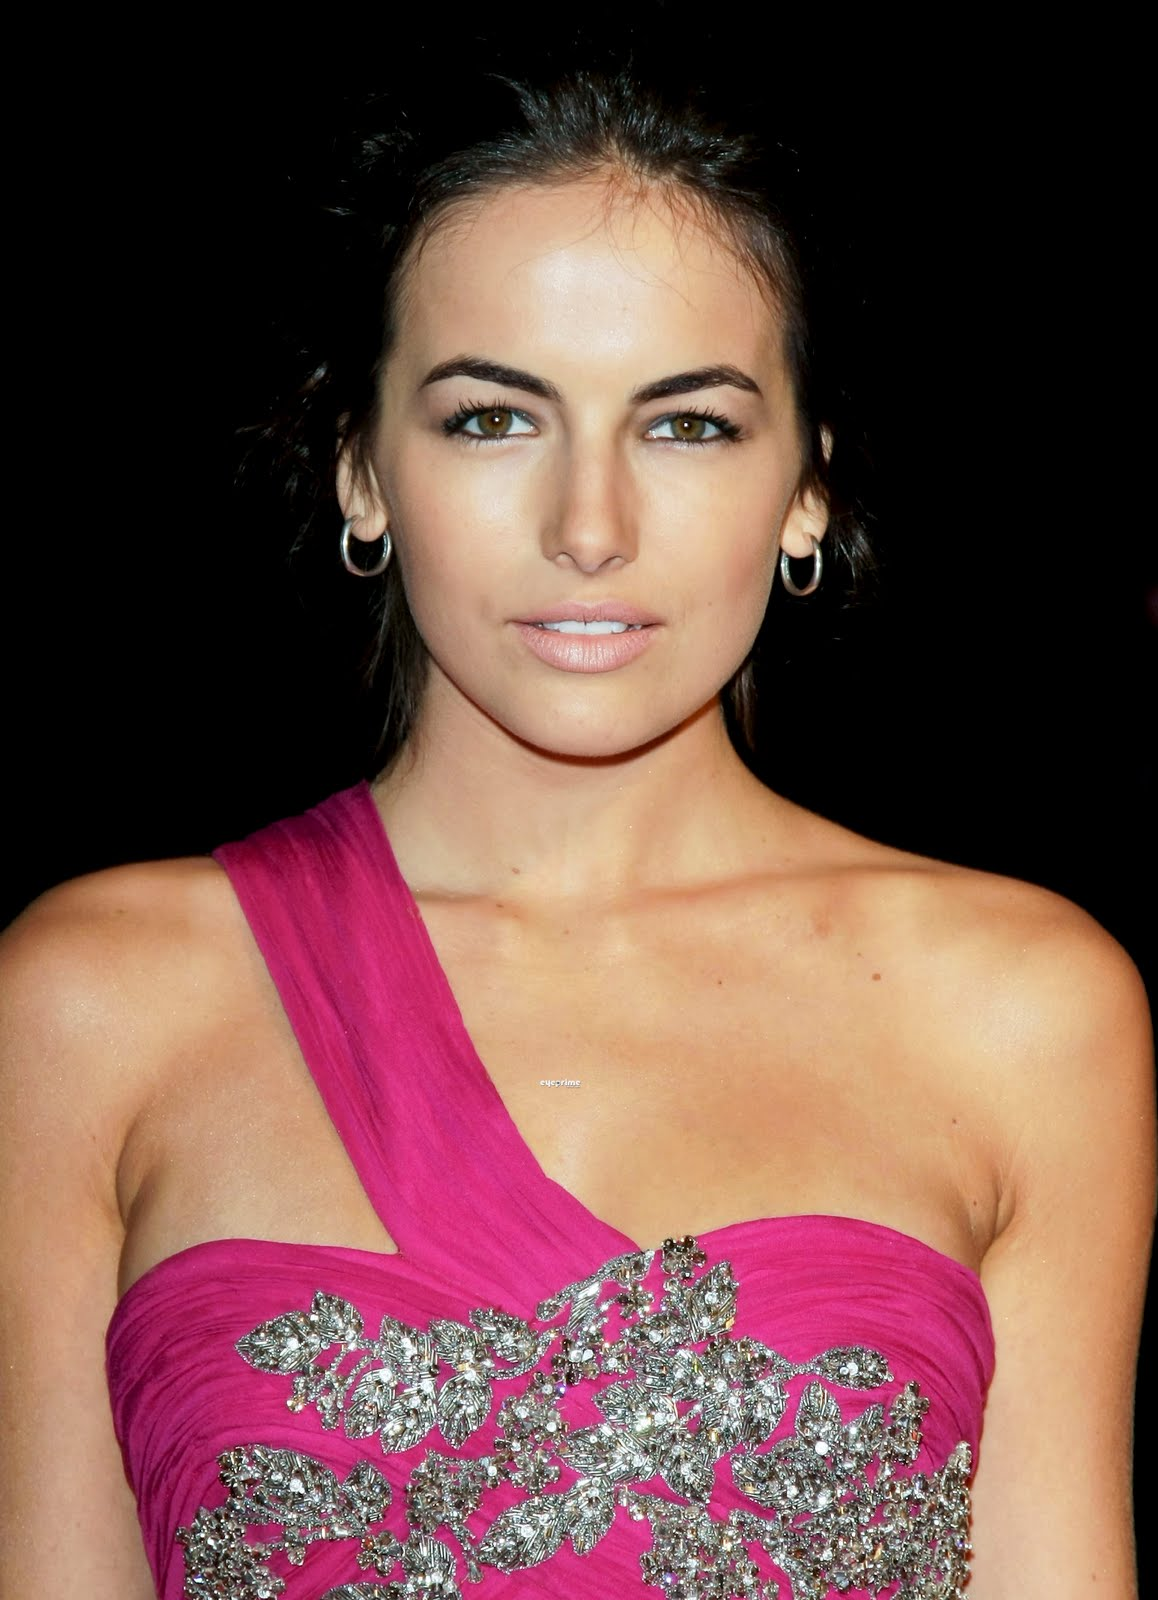 Camilla Belle Romance Hairstyles Pictures, Long Hairstyle 2013, Hairstyle 2013, New Long Hairstyle 2013, Celebrity Long Romance Hairstyles 2118